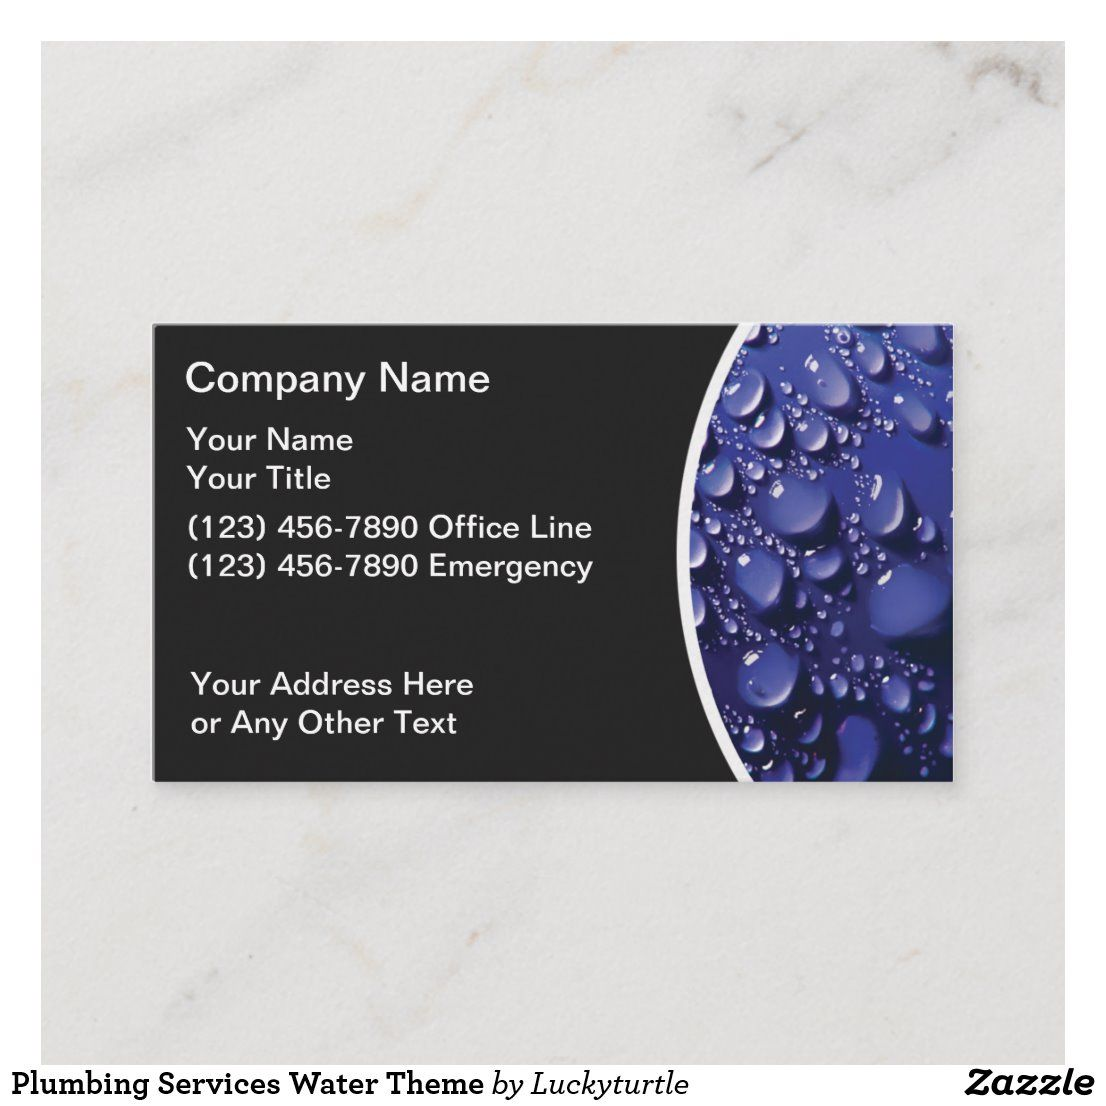 Plumbing Services Water Theme Business Card Business Cards Layout Plumbers Gift Business Card Size